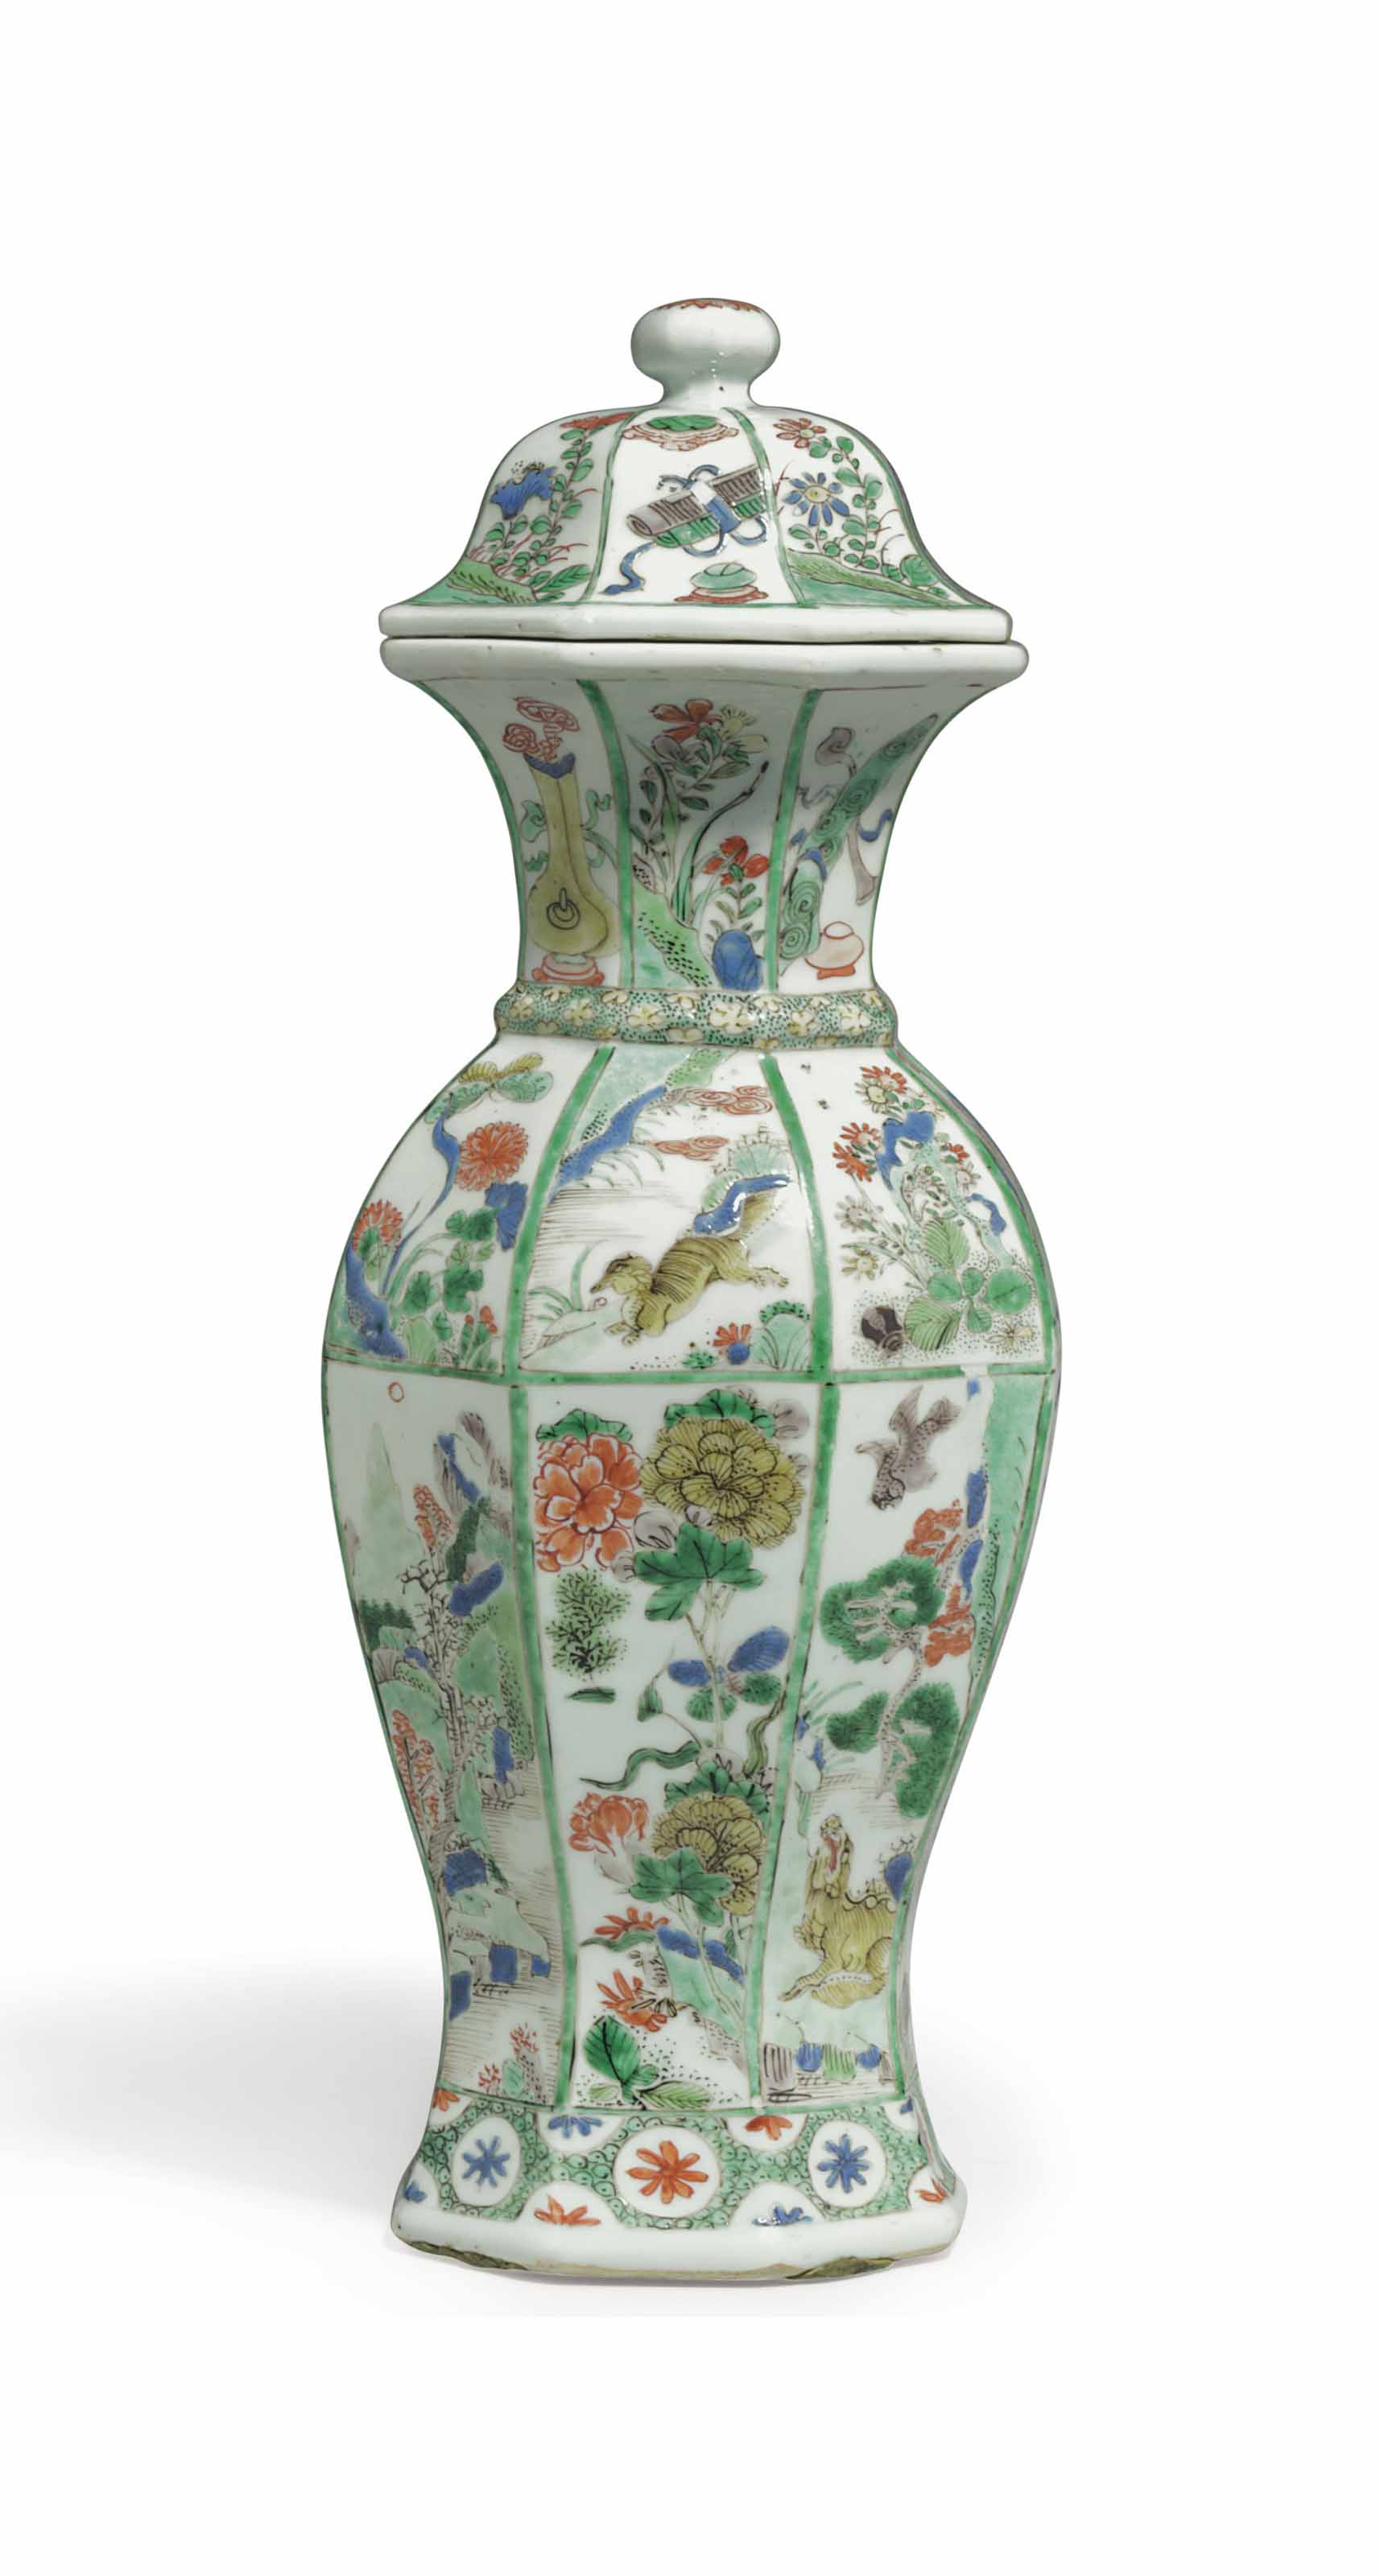 A CHINESE EXPORT PORCELAIN FAMILLE VERTE BALUSTER VASE AND COVER